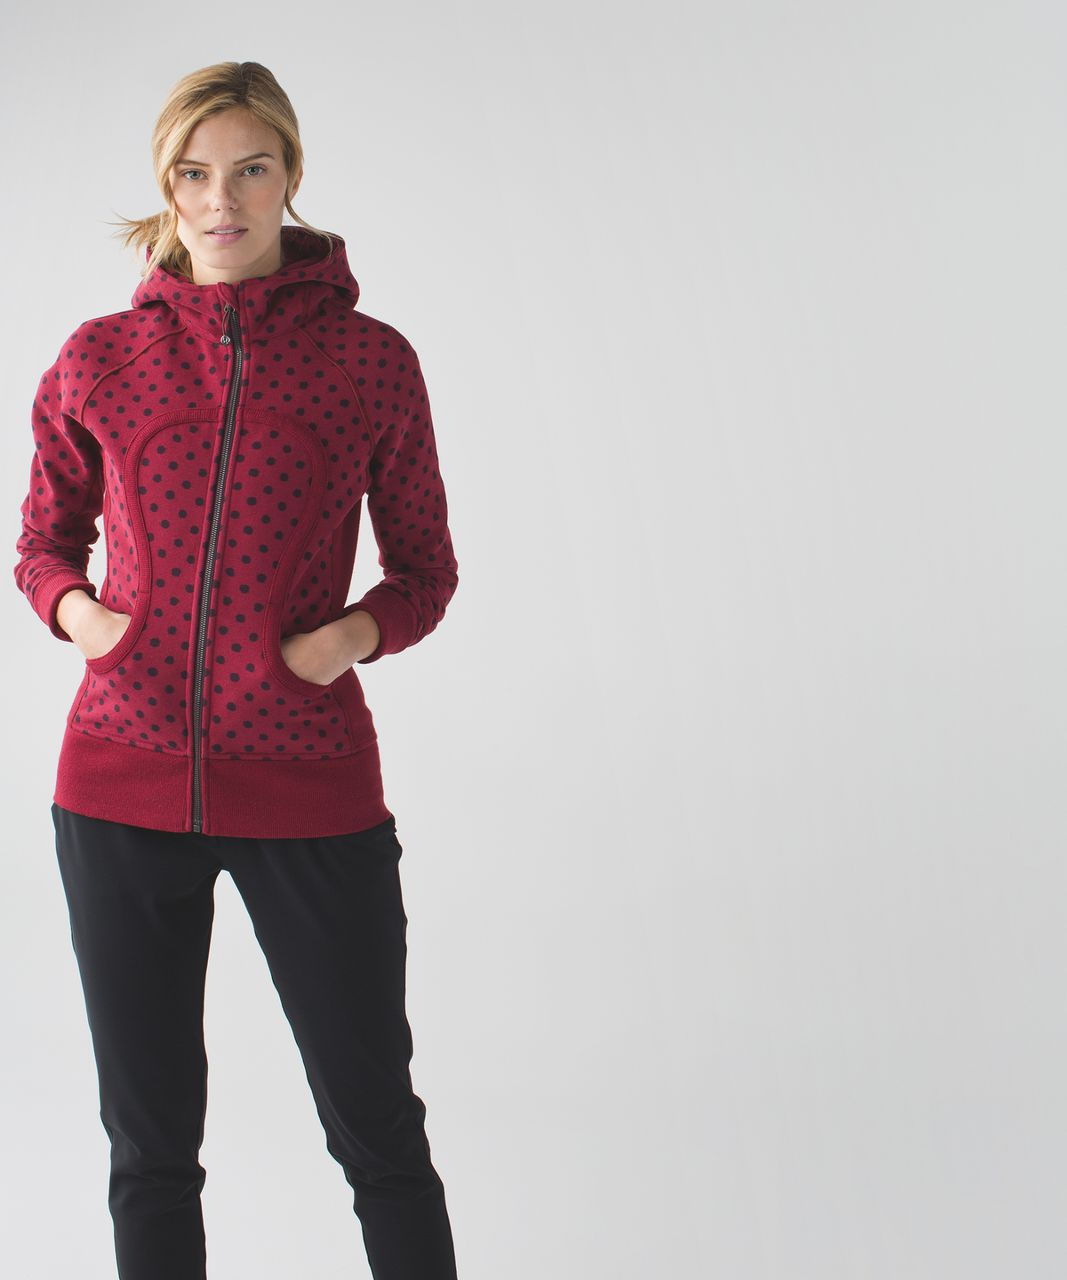 Lululemon Scuba Hoodie II - Ghost Dot Heathered Cranberry Bordeaux Drama / Cranberry / Heathered Cranberry